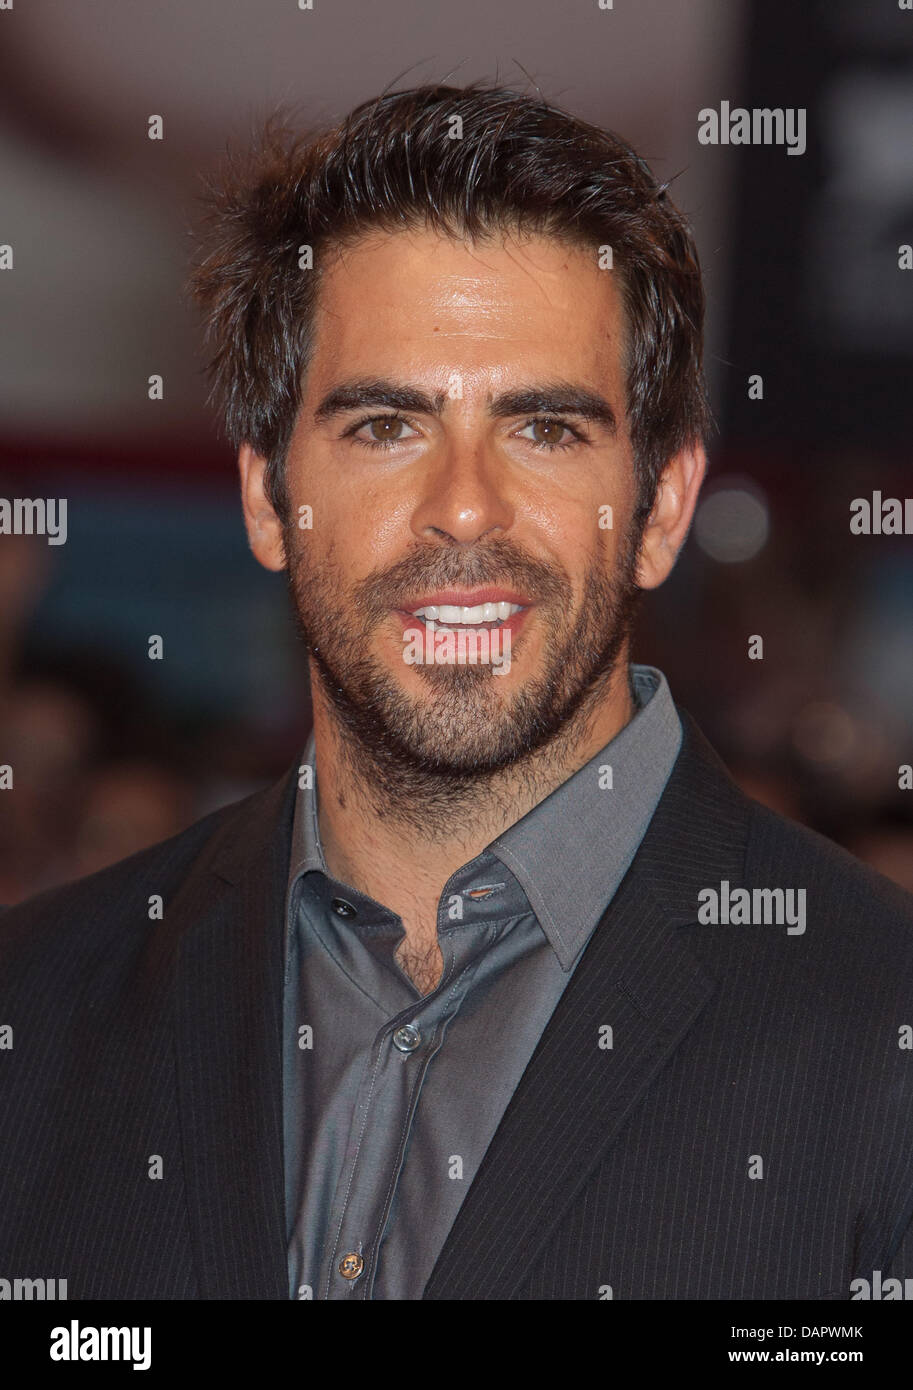 Actor Eli Roth arrives at the premiere of 'Carnage' at the 68th Venice International Film Festival, Mostra - Stock Image